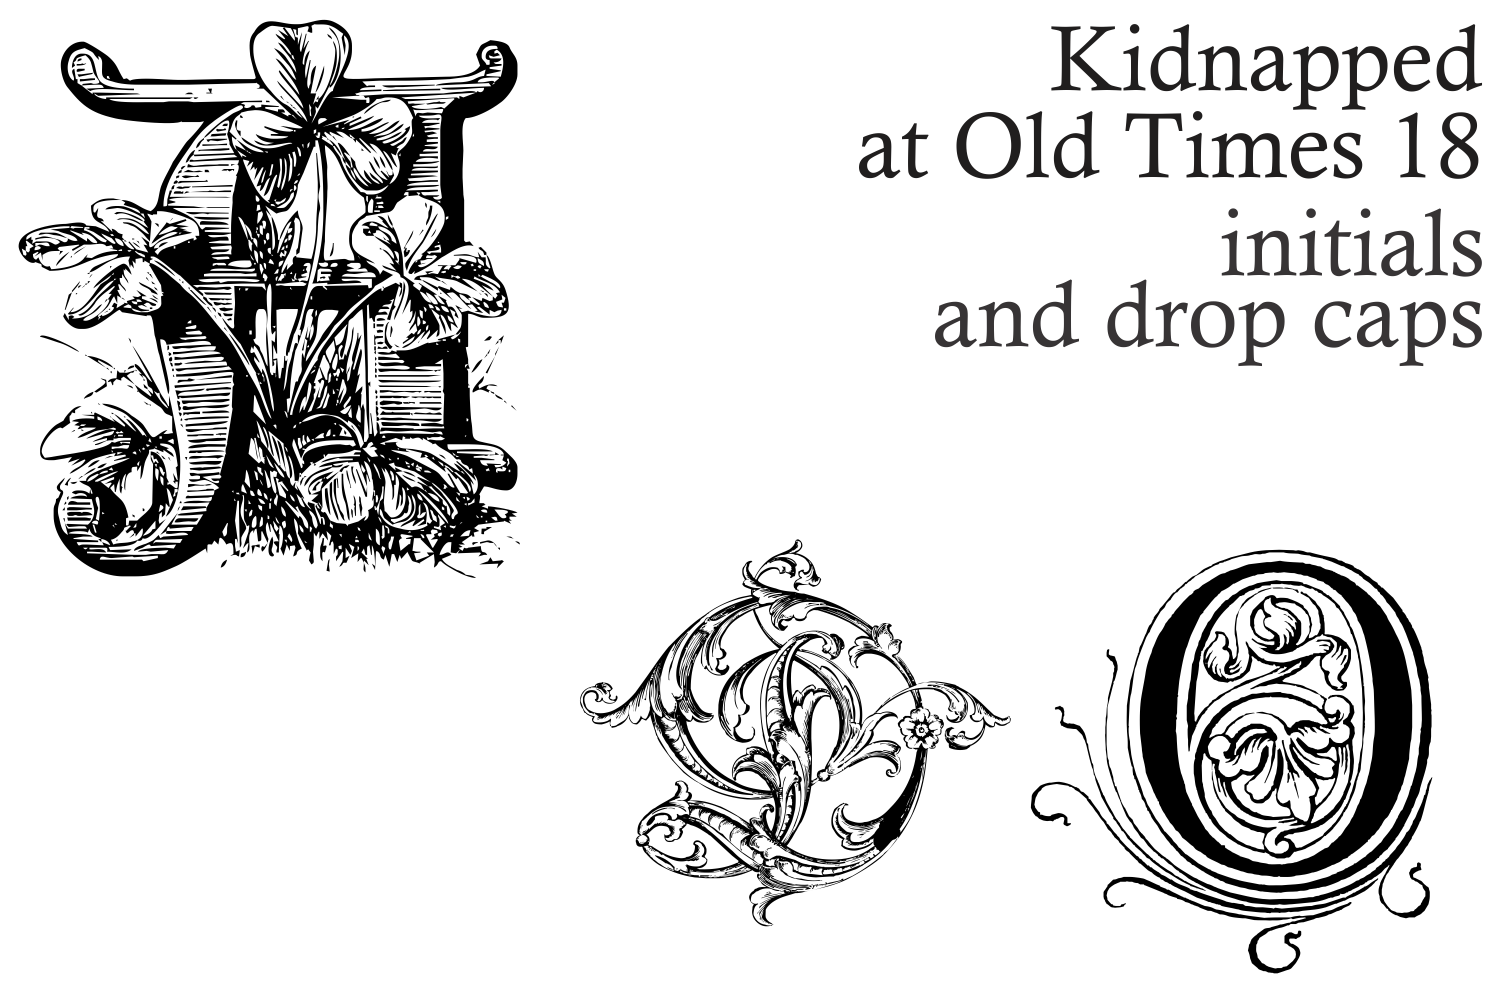 Kidnapped at Old Times 18 example image 1